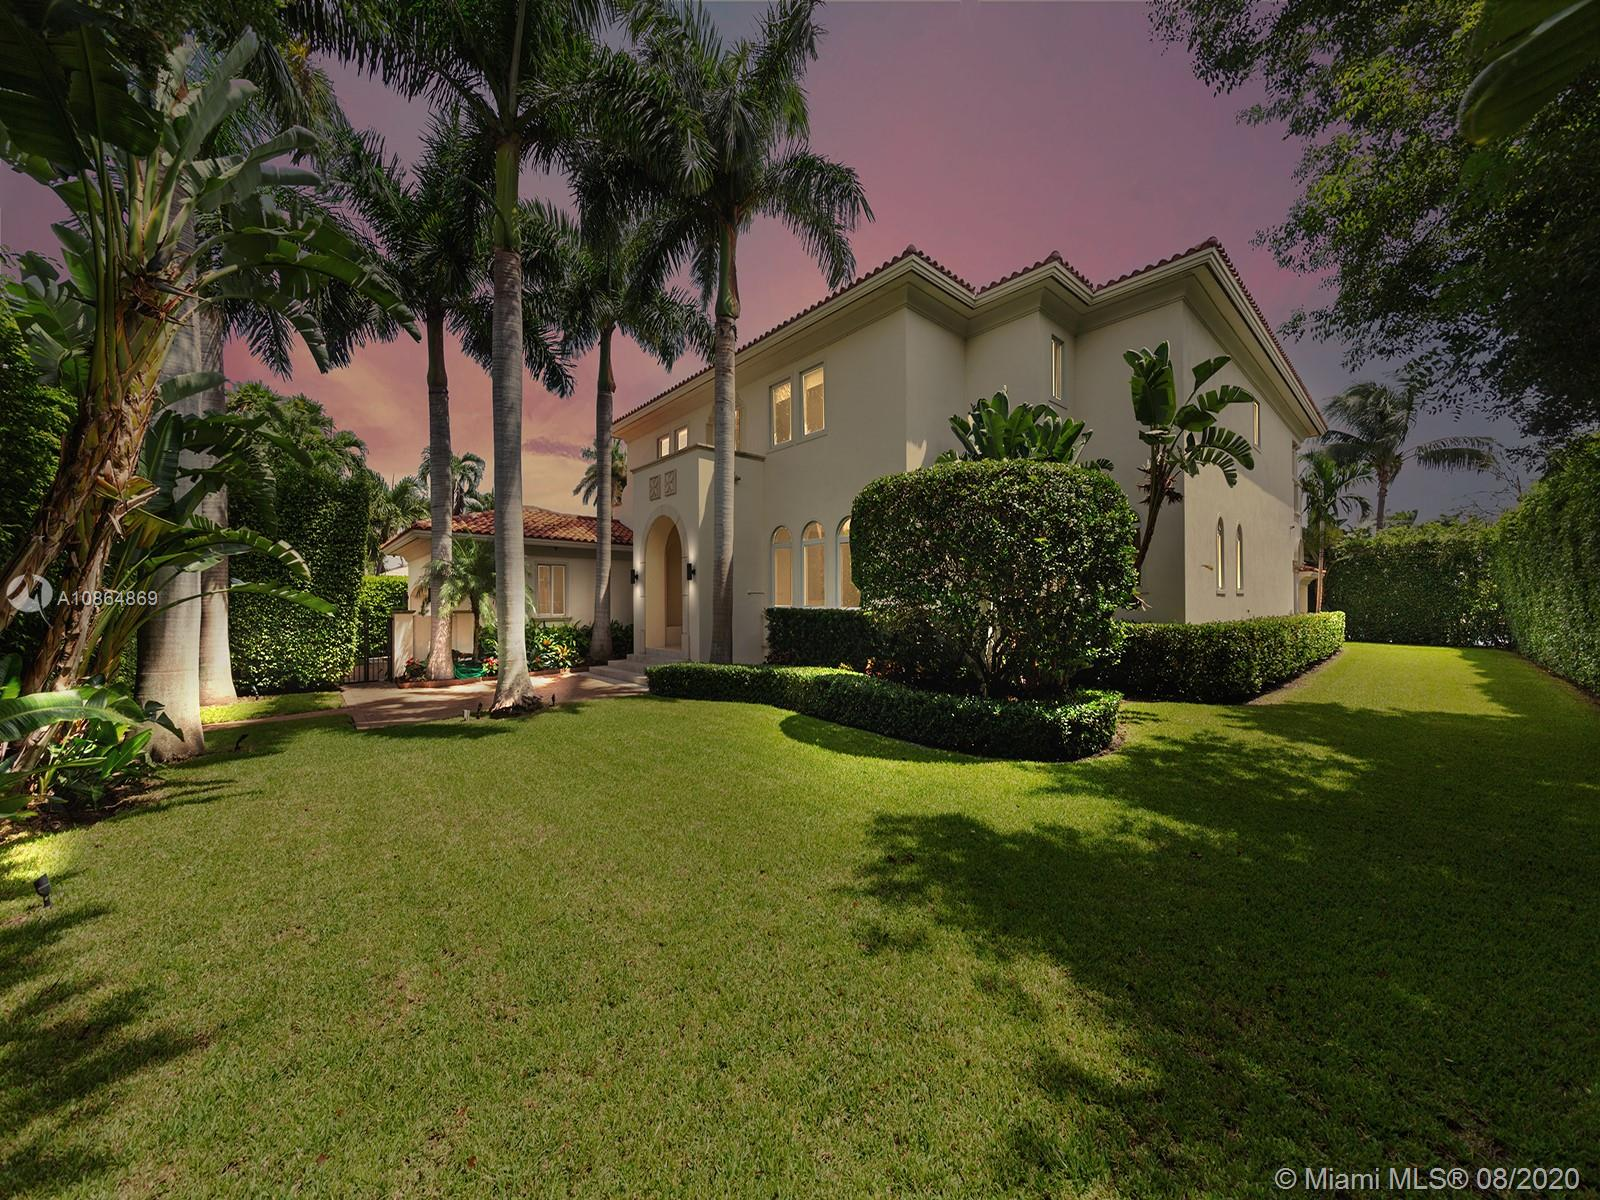 Coveted Bay Harbor Islands Waterfront. This luxurious custom built Mediterranean estate w/ contemporary design is nestled on a 16,875 sf lot w/ mature foliage offering complete privacy. The residence features magnificent foyer entry w/ 24' coffered ceilings welcoming you to an open living room offering stunning views of the outdoors. 6bd/6.5ba, marble & hardwood floors, chef's kitchen, top-of-the-line appl, formal dining, media room, grand master suite leaves nothing to be desired w/ double door entry, 2 closets, huge master bath & terrace. 113' of waterfront w/ huge protected dock allowing for easy bay & ocean access within minutes. Huge outdoor area surrounds the opulent Jacuzzi & pool, ideal for Florida entertaining at its finest! You could not pick a better community to call home!